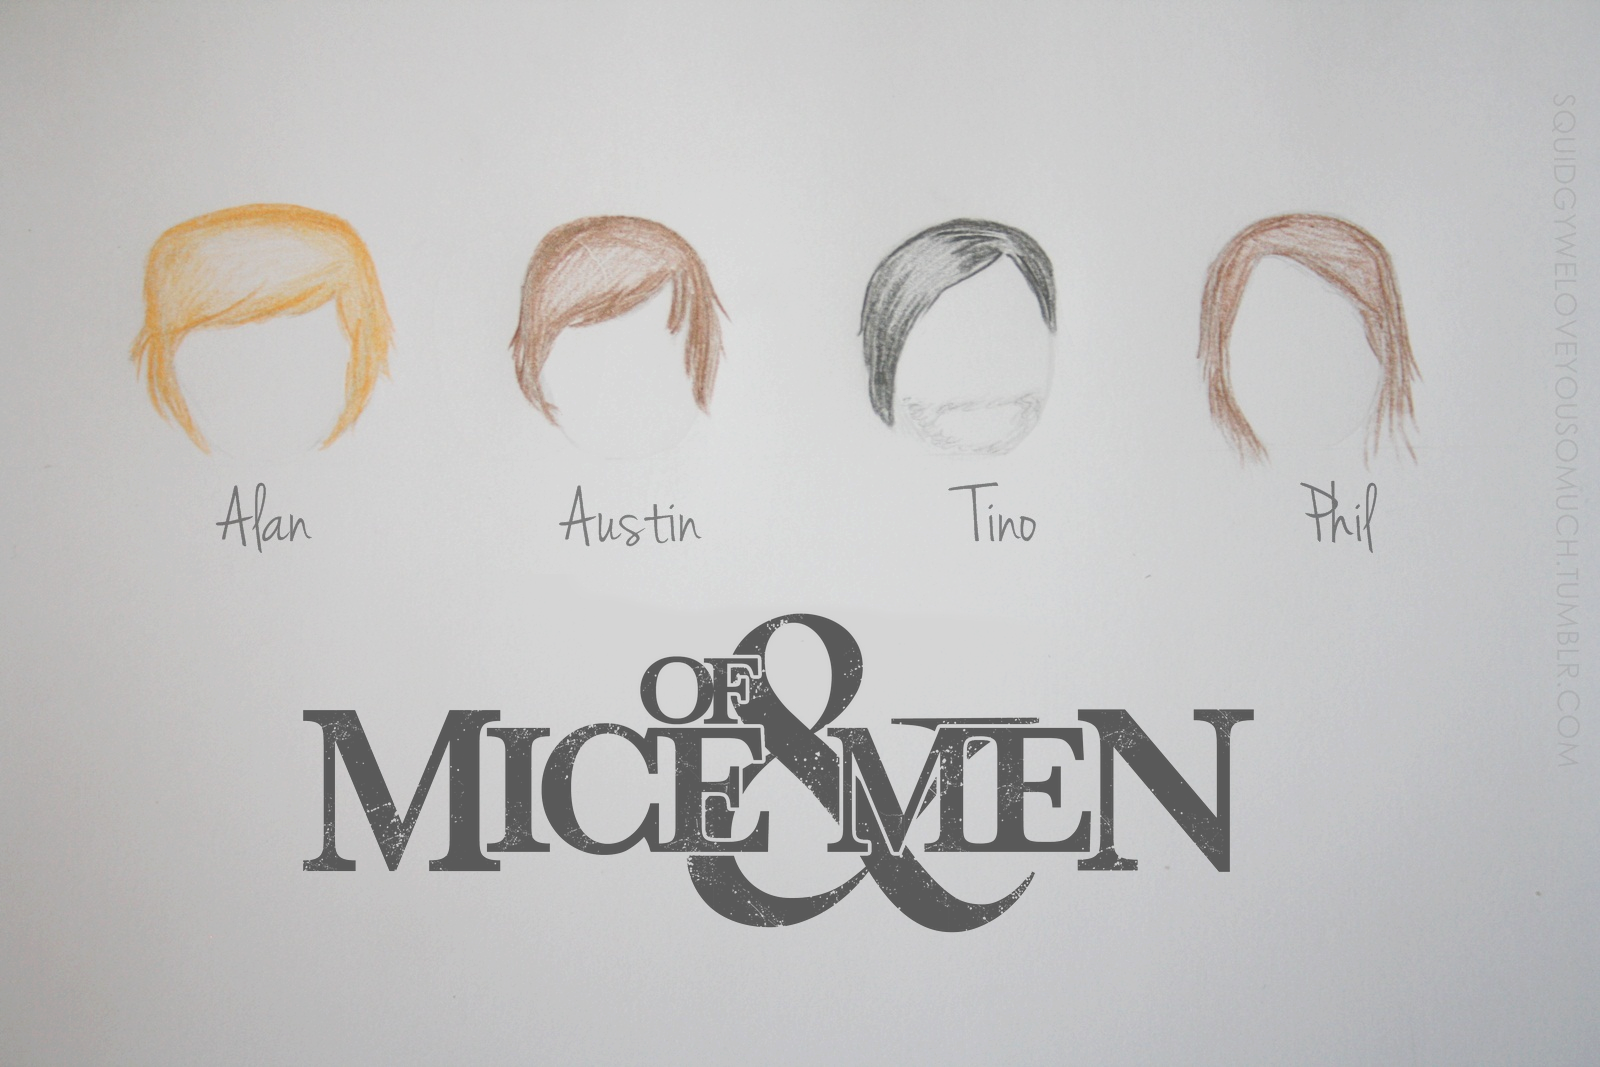 Of Mice and Men Band Poster by MICHA3L26 on DeviantArt